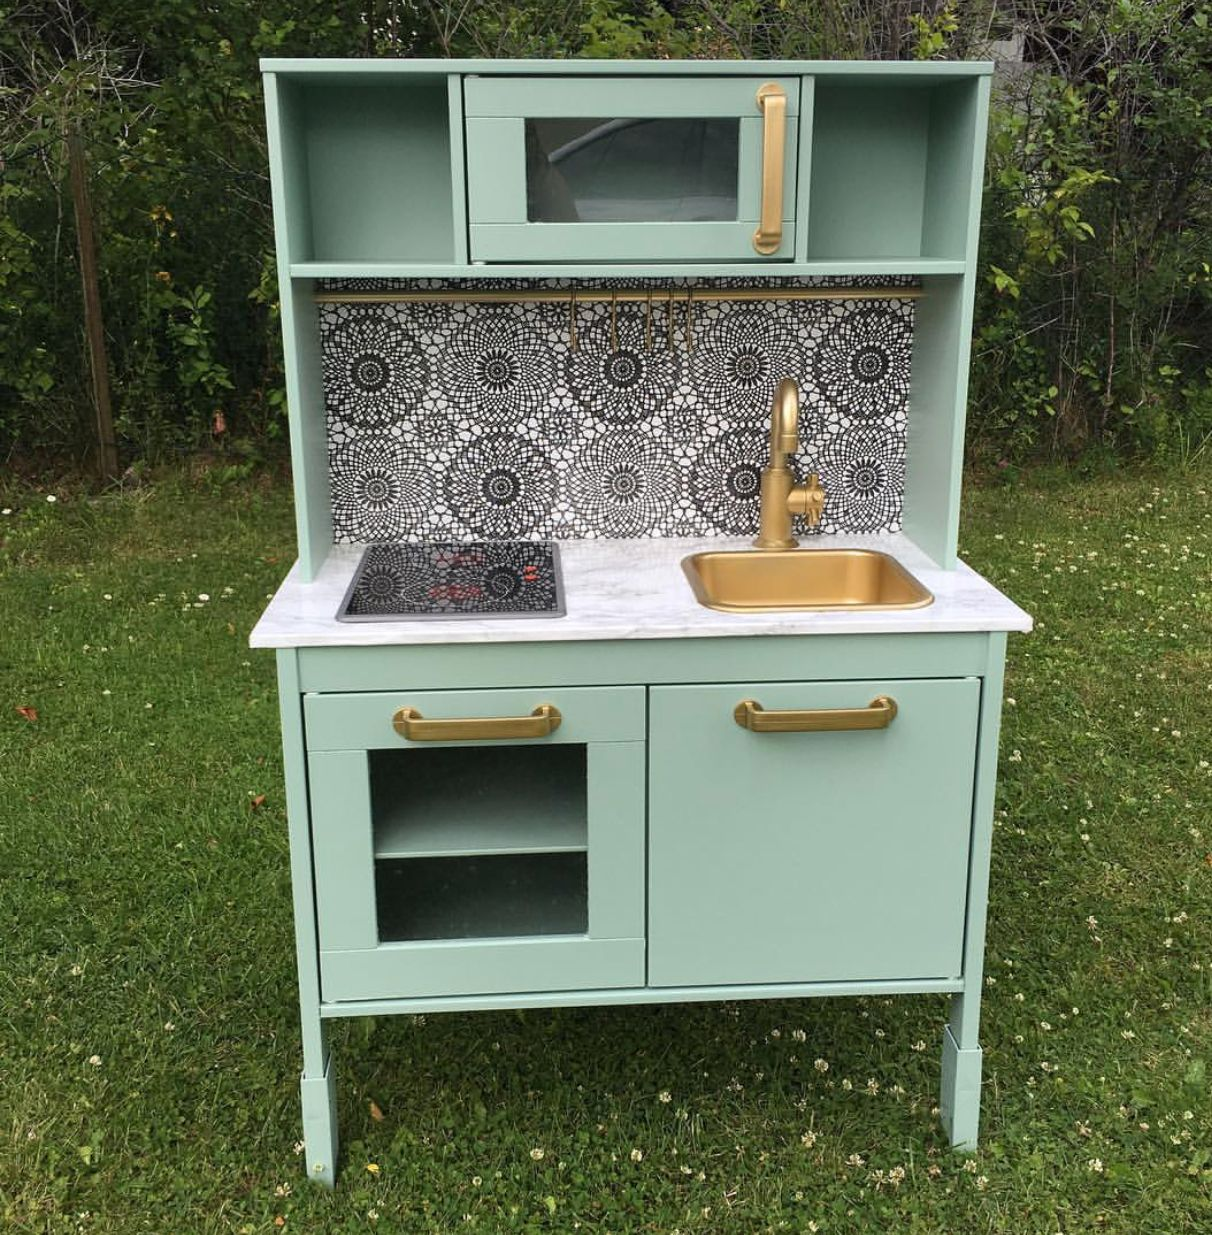 Pin by Nikol Hencl on Play kitchen Play kitchen, Kitchen